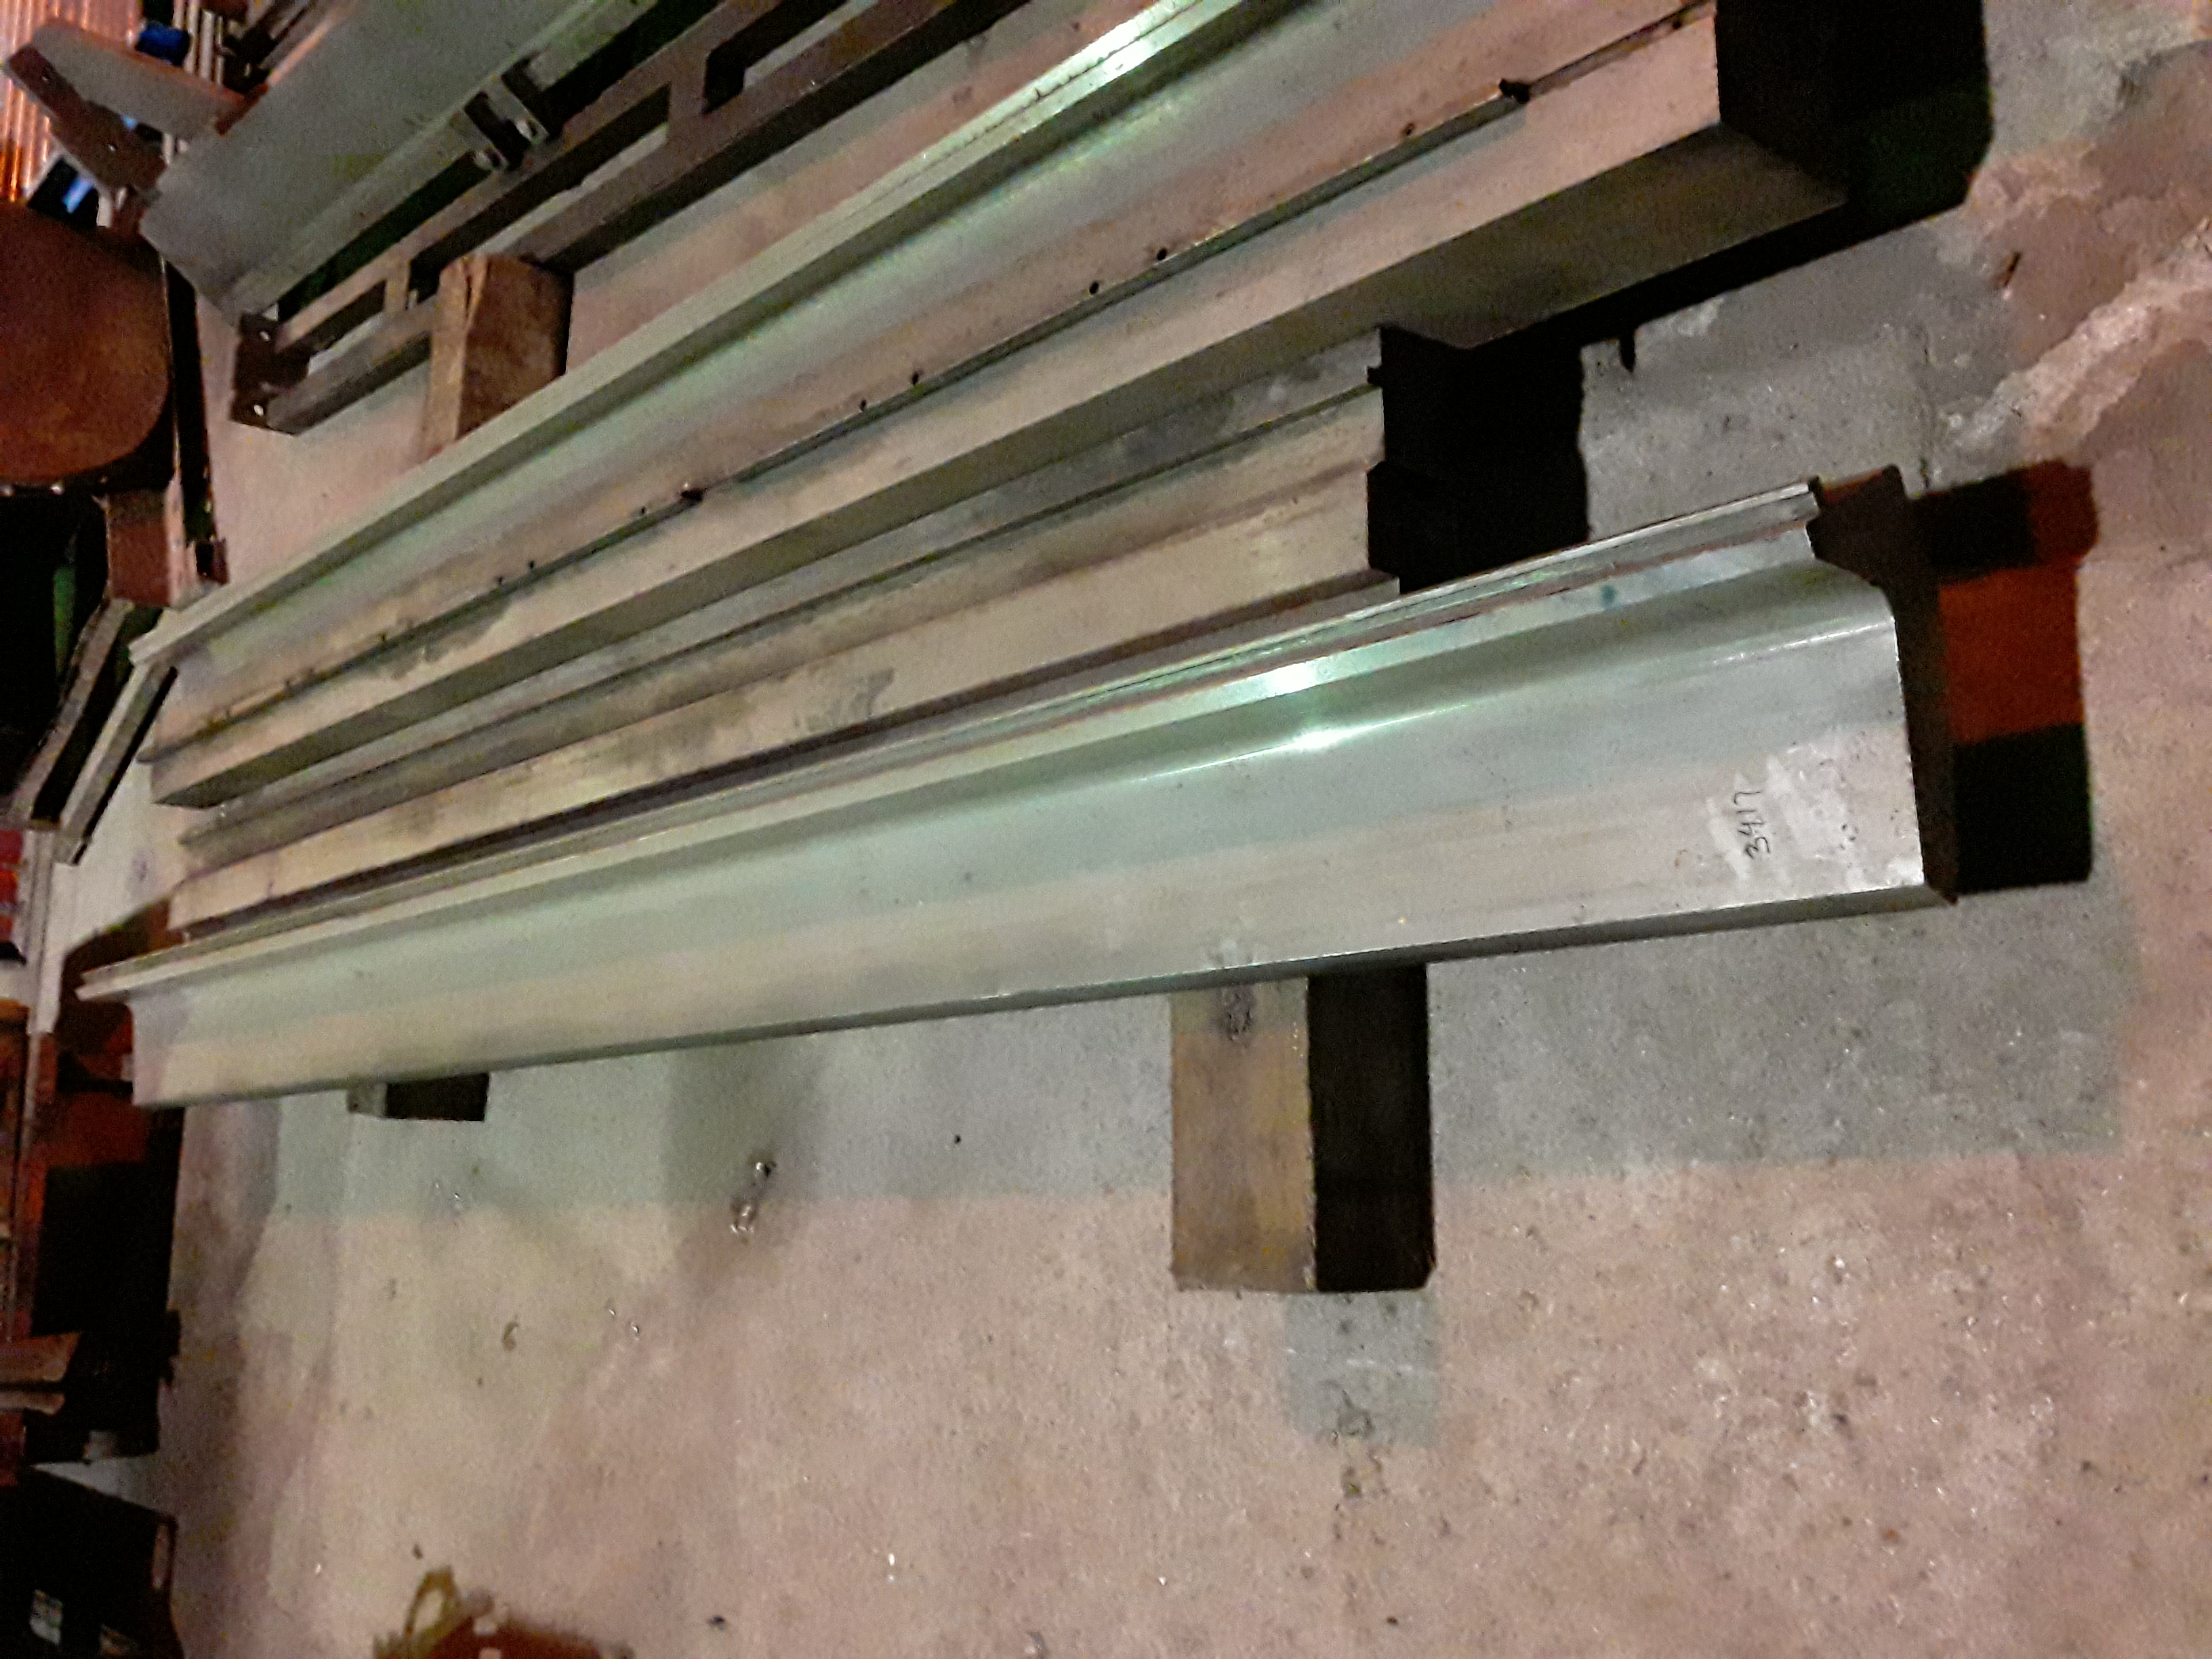 (1) PREOWNED GOOSENECK PUNCH, 5 in  WIDE X 120 in  LONG X 9-<br>1/4 in  TALL, TIP 1-1/2 in